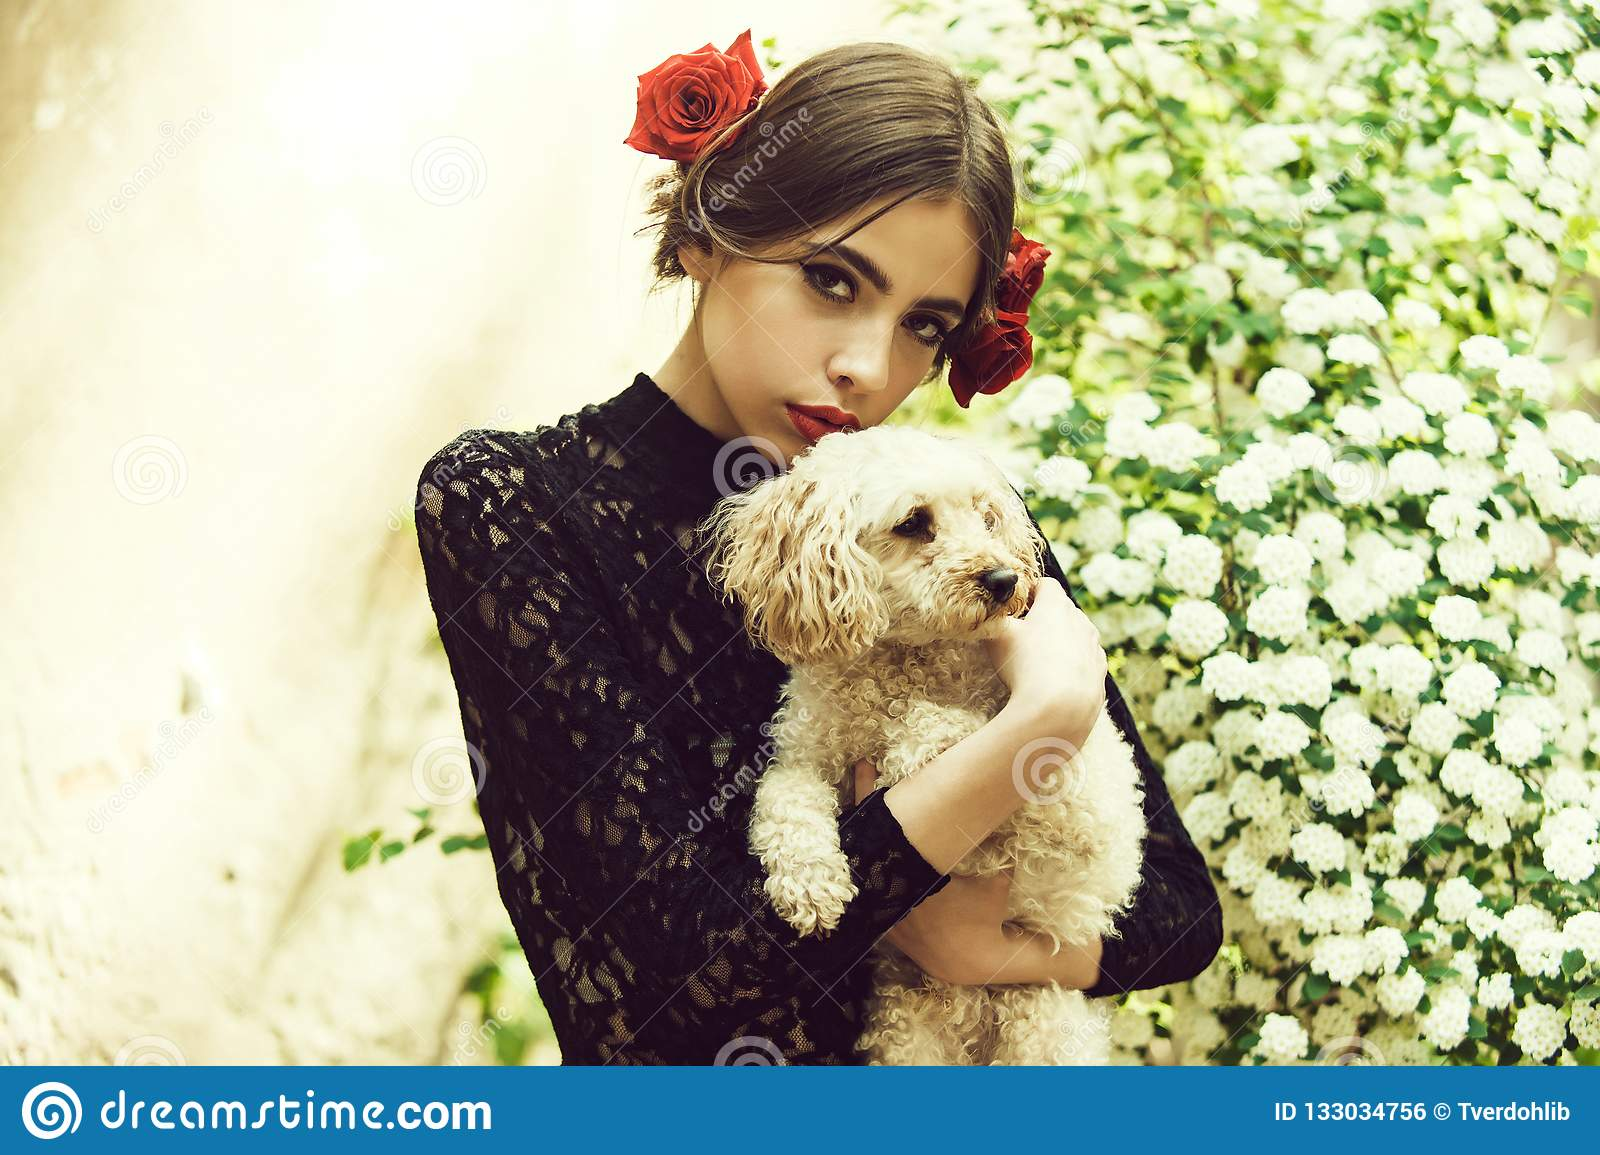 Woman Hold Dog With Spanish Makeup Rose In Hair Stock Photo Image